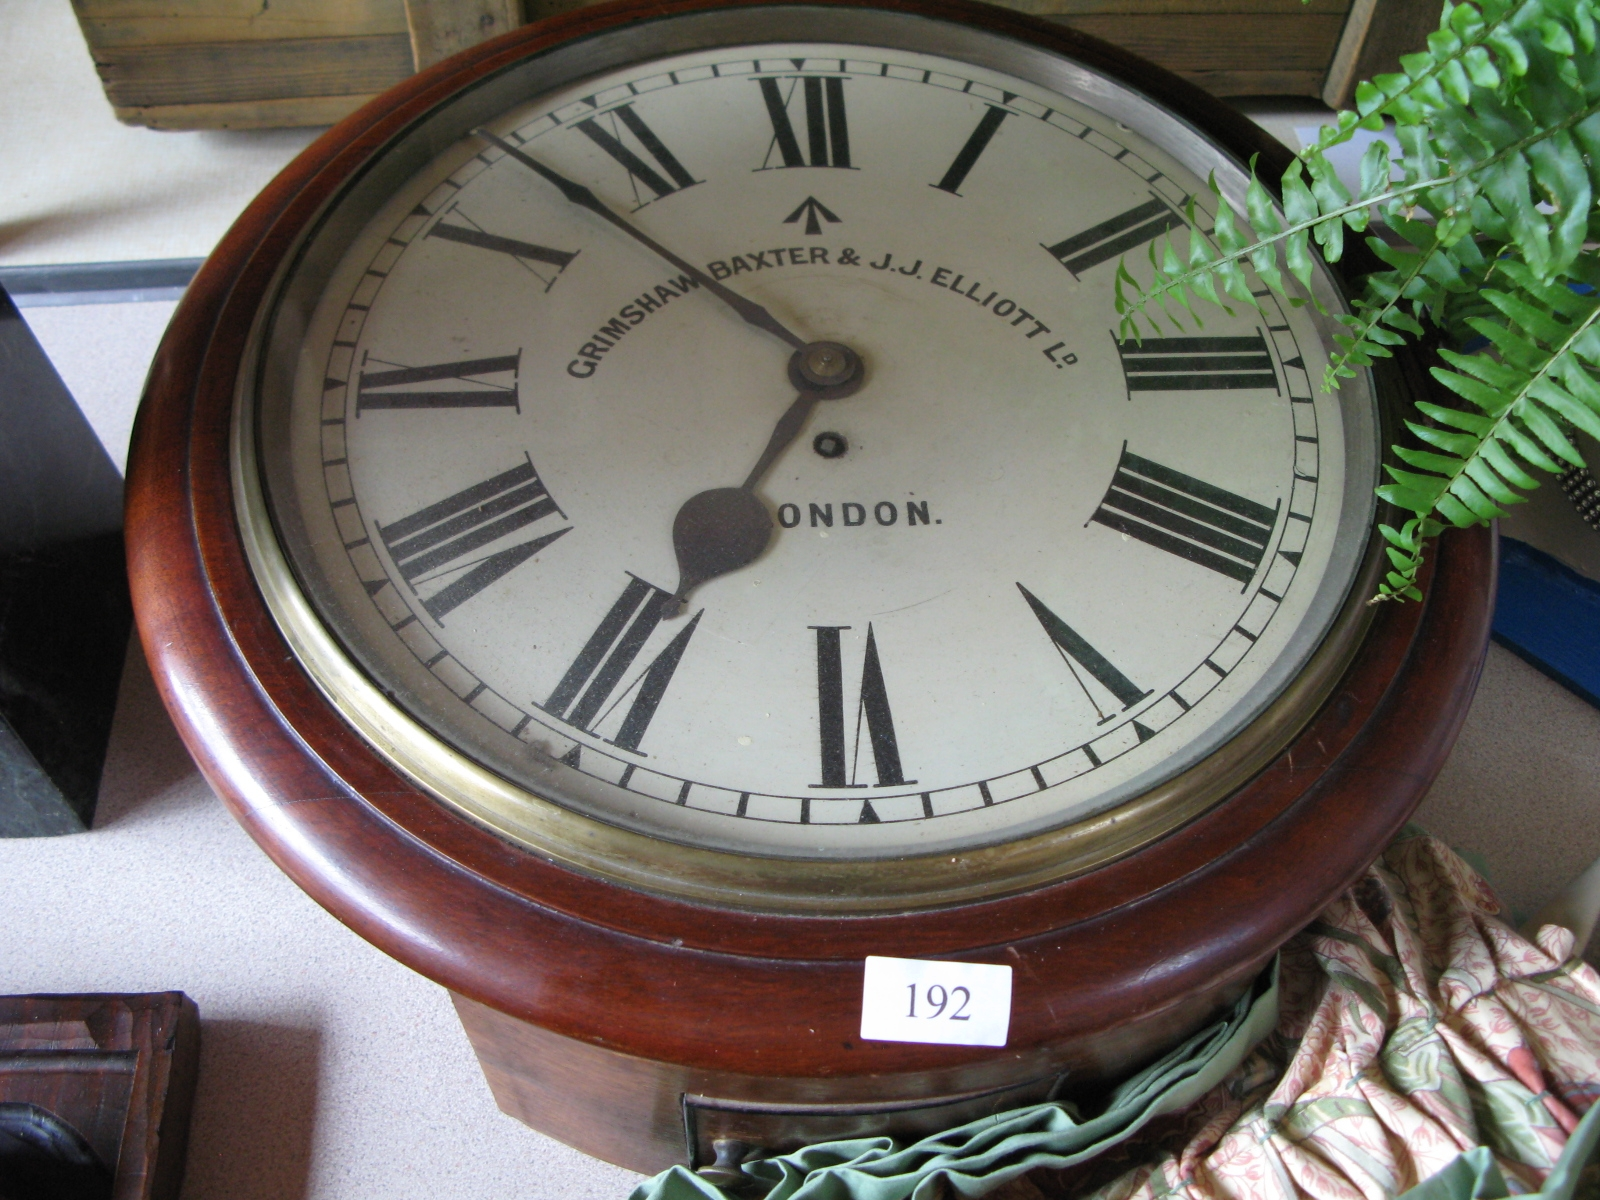 Station Clock - Sold for £140